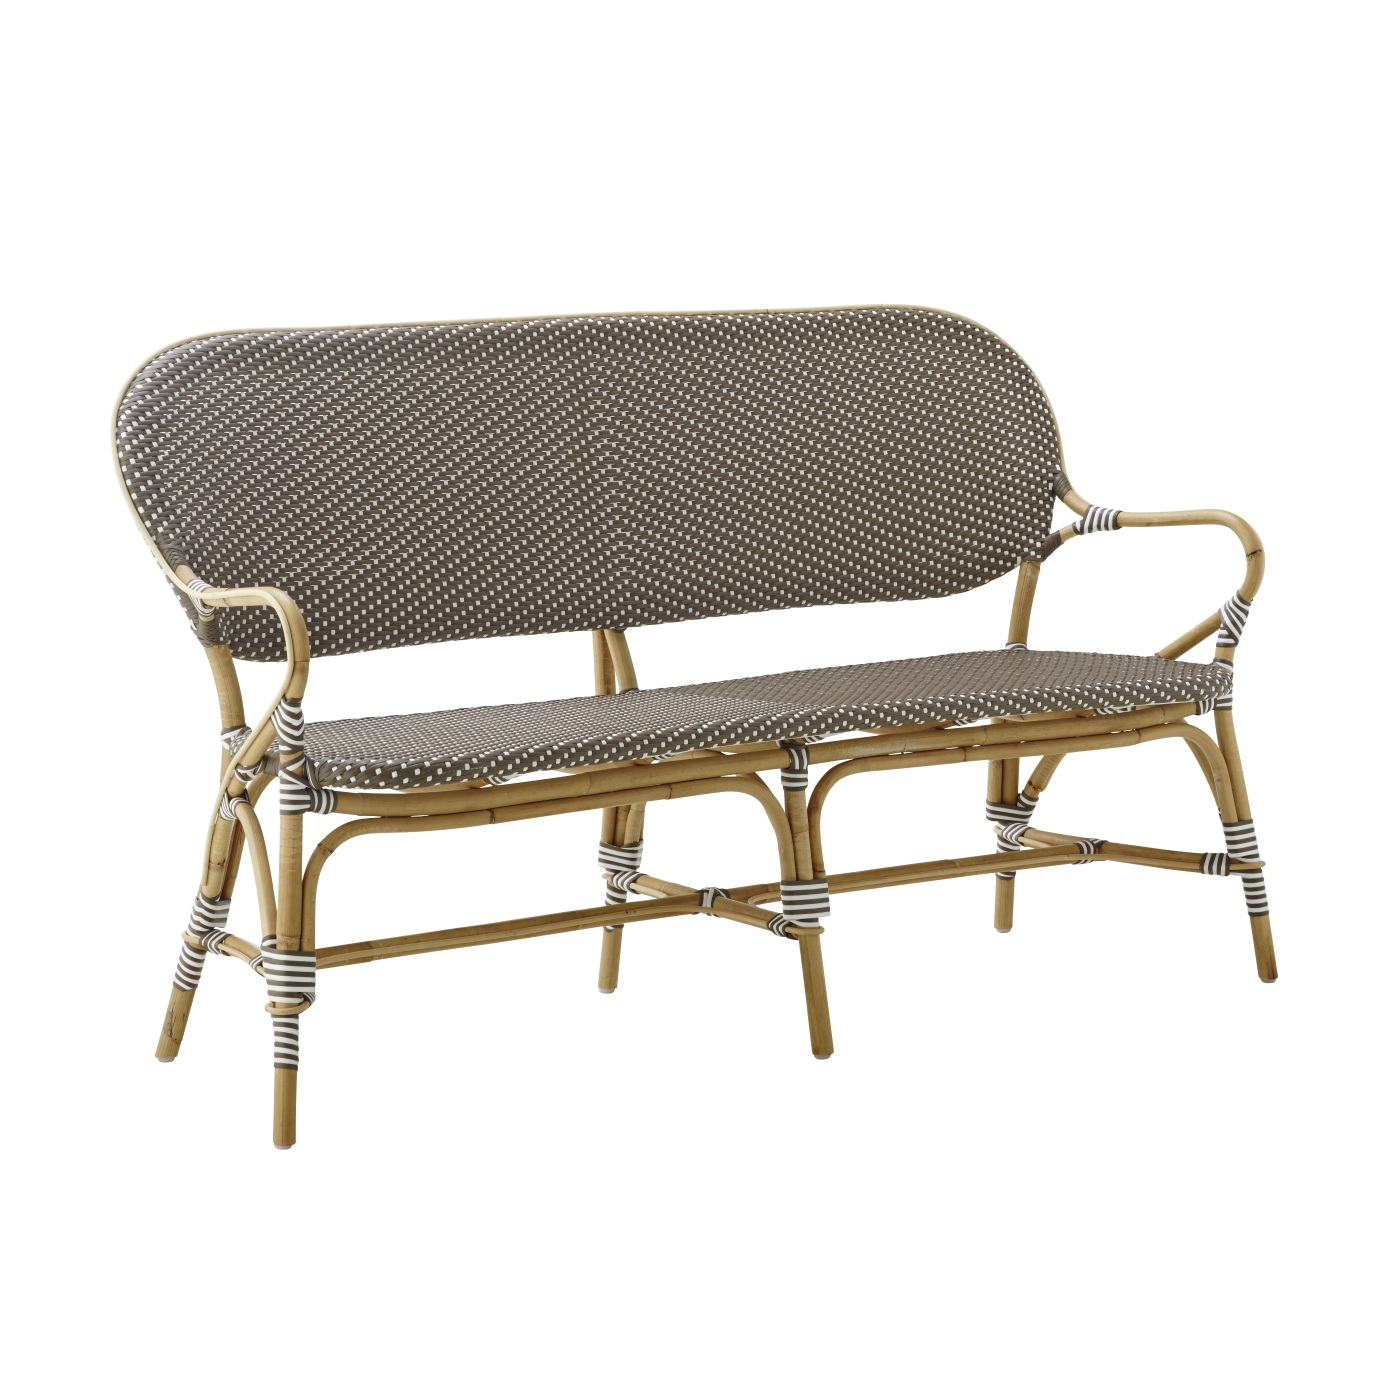 Isabell bench Affäire cappuccino, Sika-design